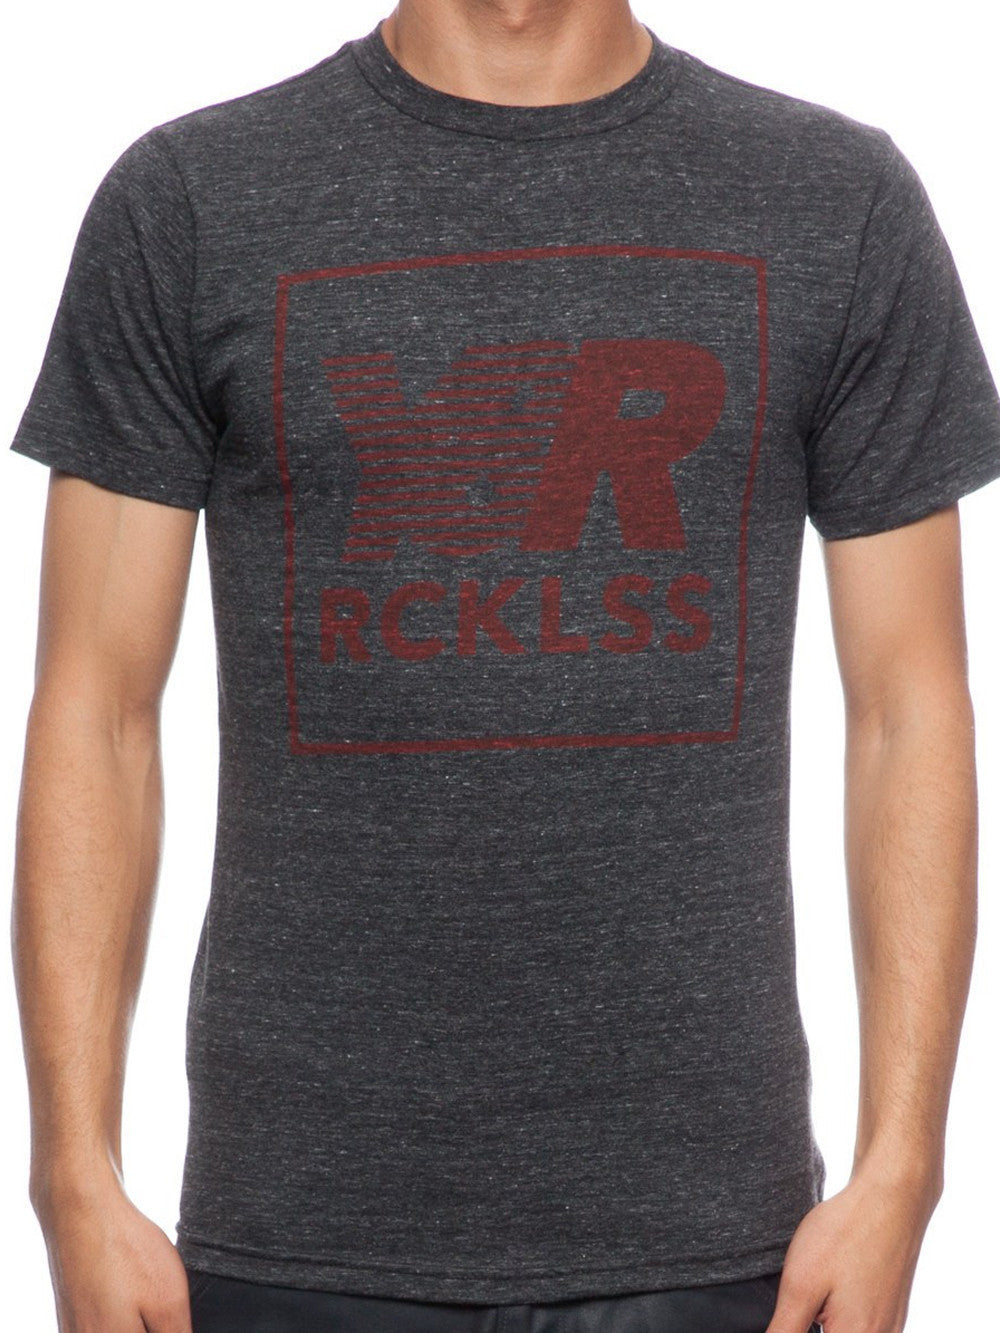 Young and Reckless Mens - Tees - Graphic Tee Pacer Quad Tee- Charcoal